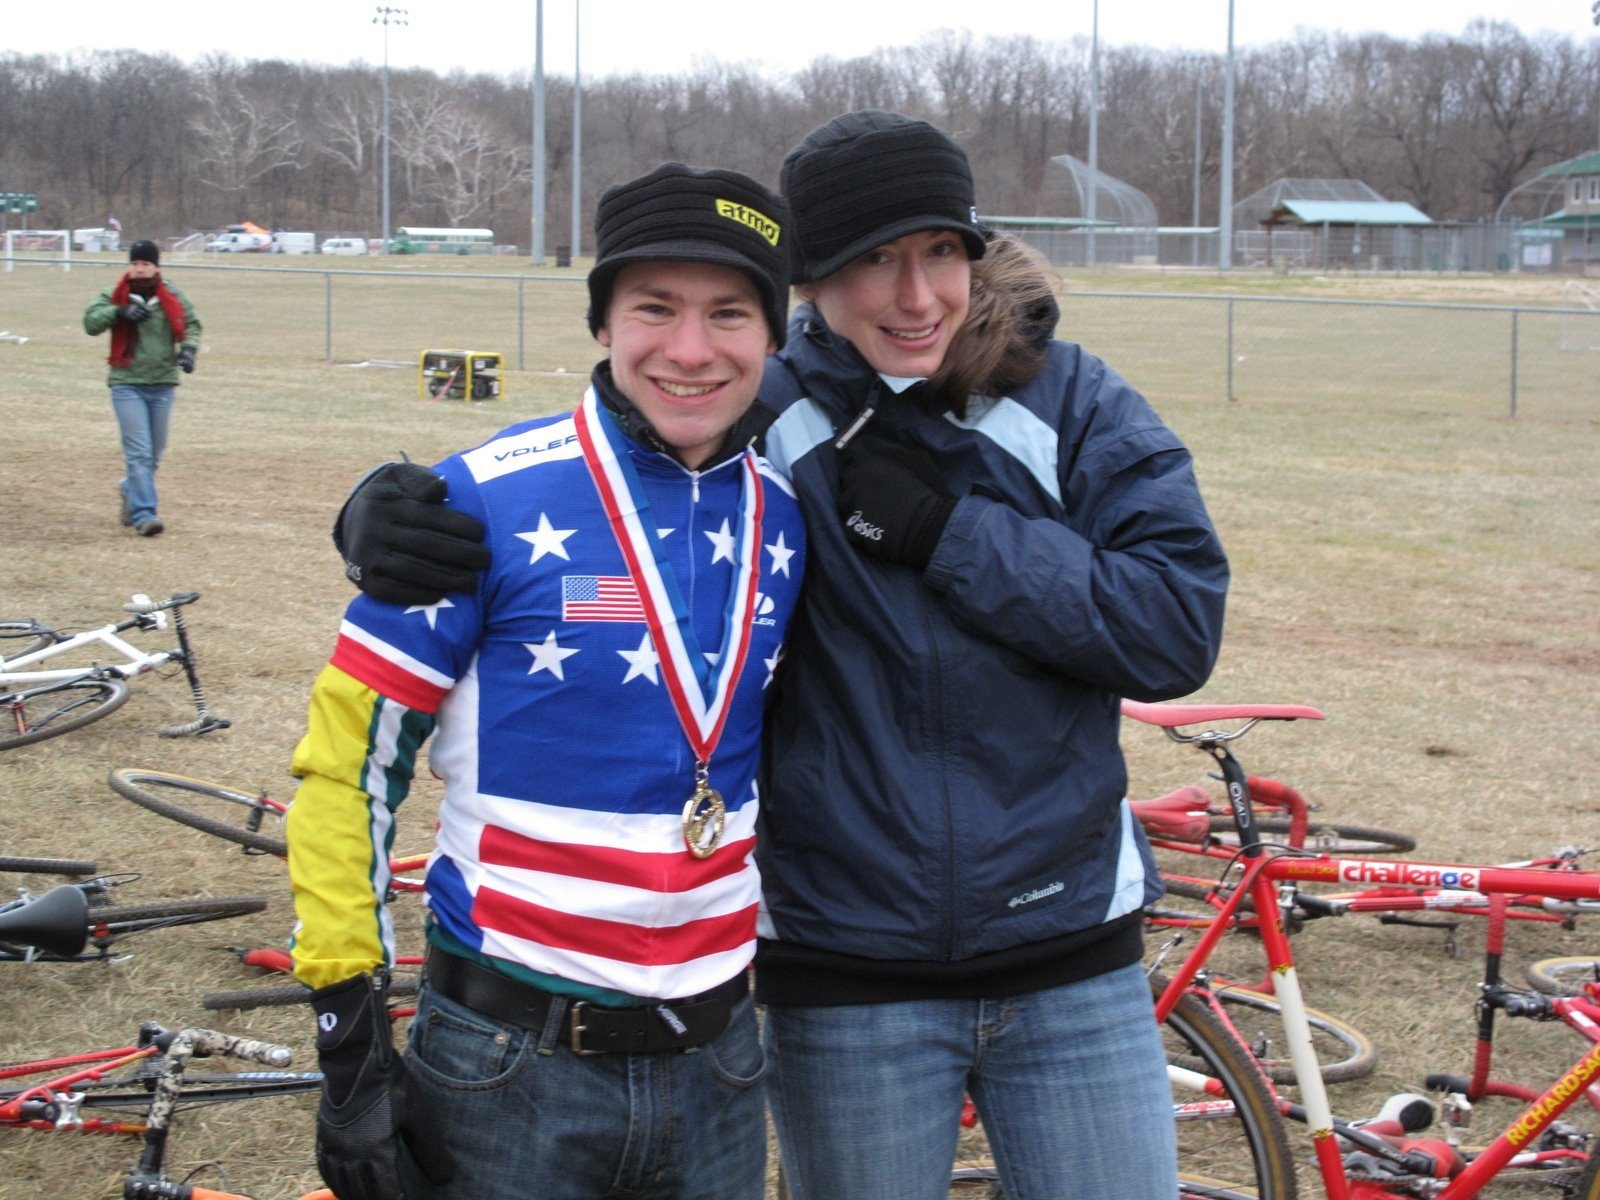 Under 23 cyclo-crosser Will Dugan (L) is racing the World's in the Netherlands January 31, 2009.